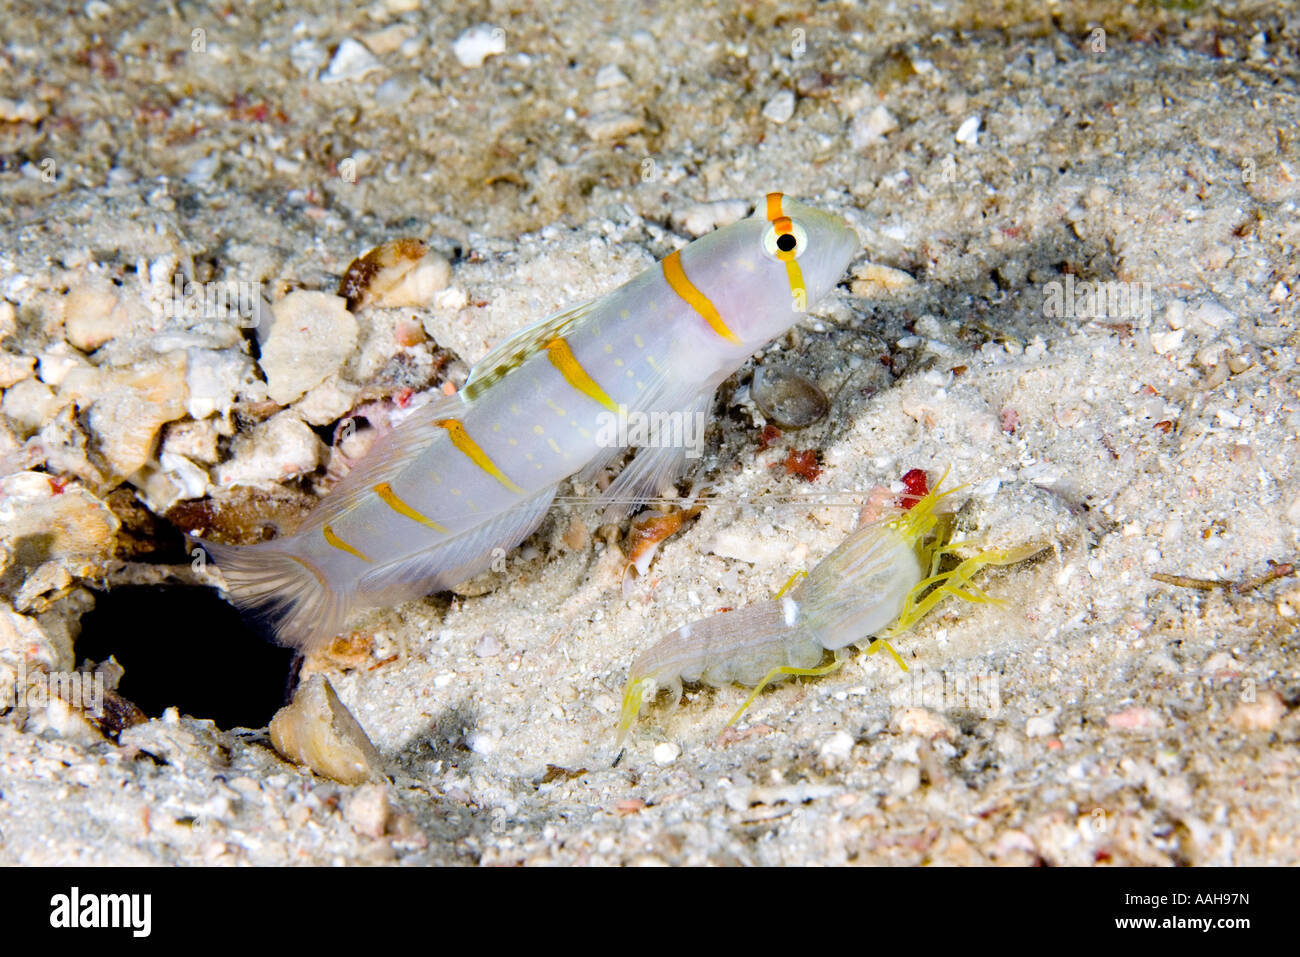 randalls-shrimpgoby-amblyeleotris-randalli-and-white-lined-snapping-AAH97N.jpg